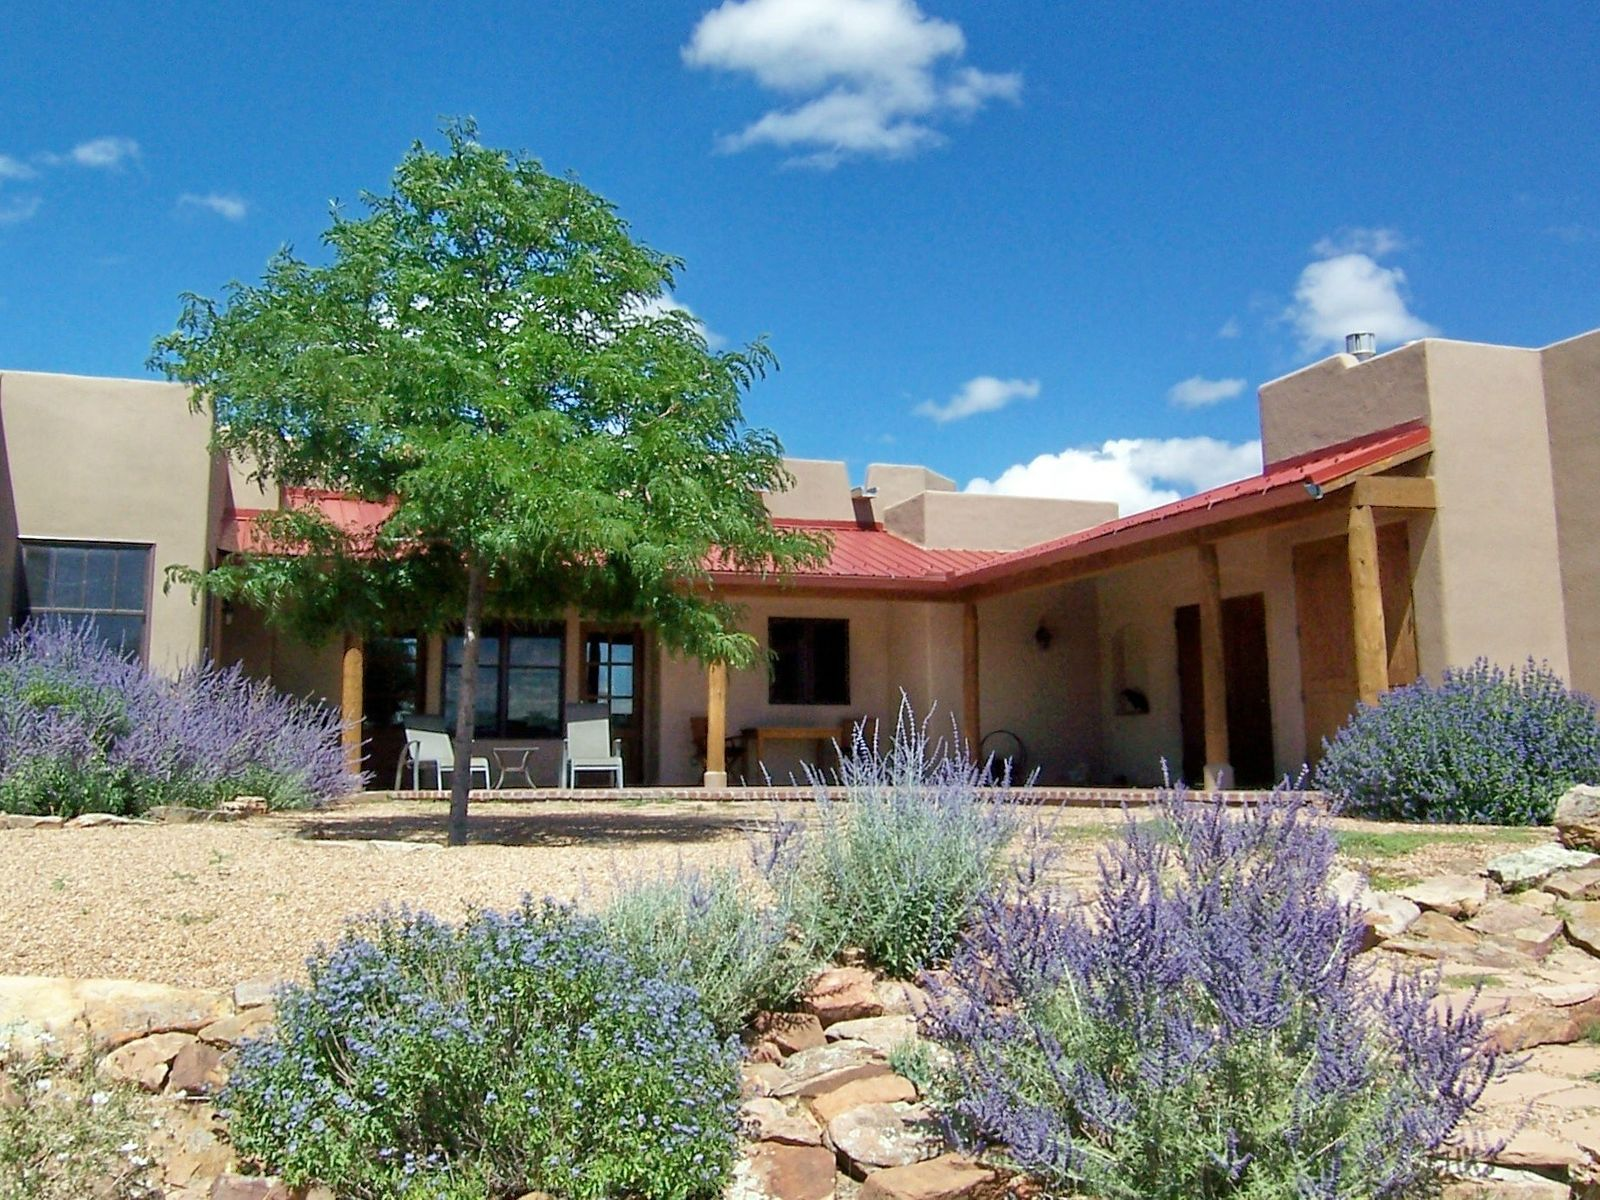 10 Camino Cielo Azul, Santa Fe NM Single Family Home - Santa Fe Real Estate